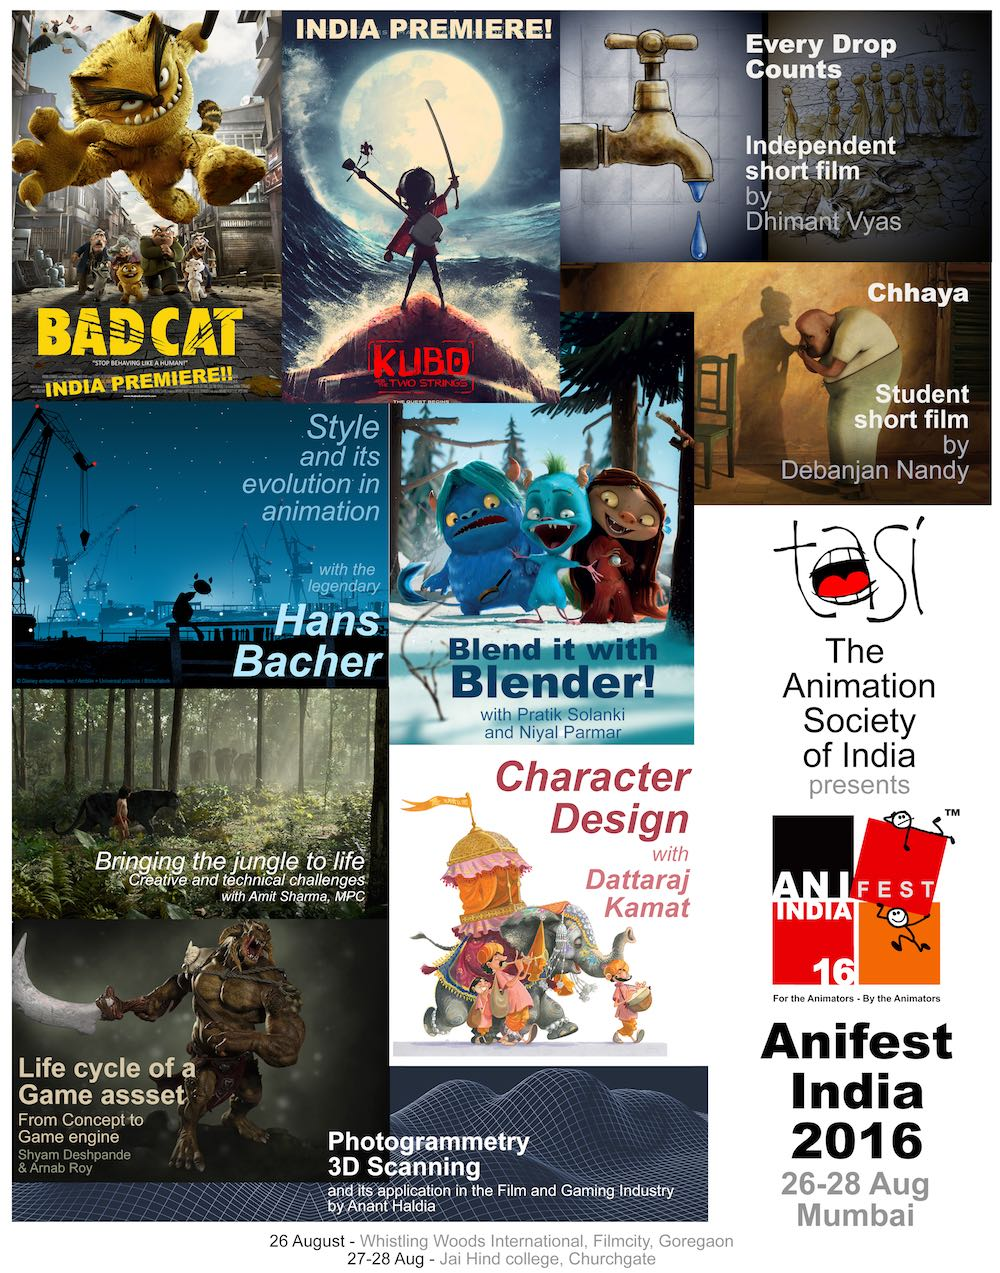 Anifest India 2016 - All Sessions